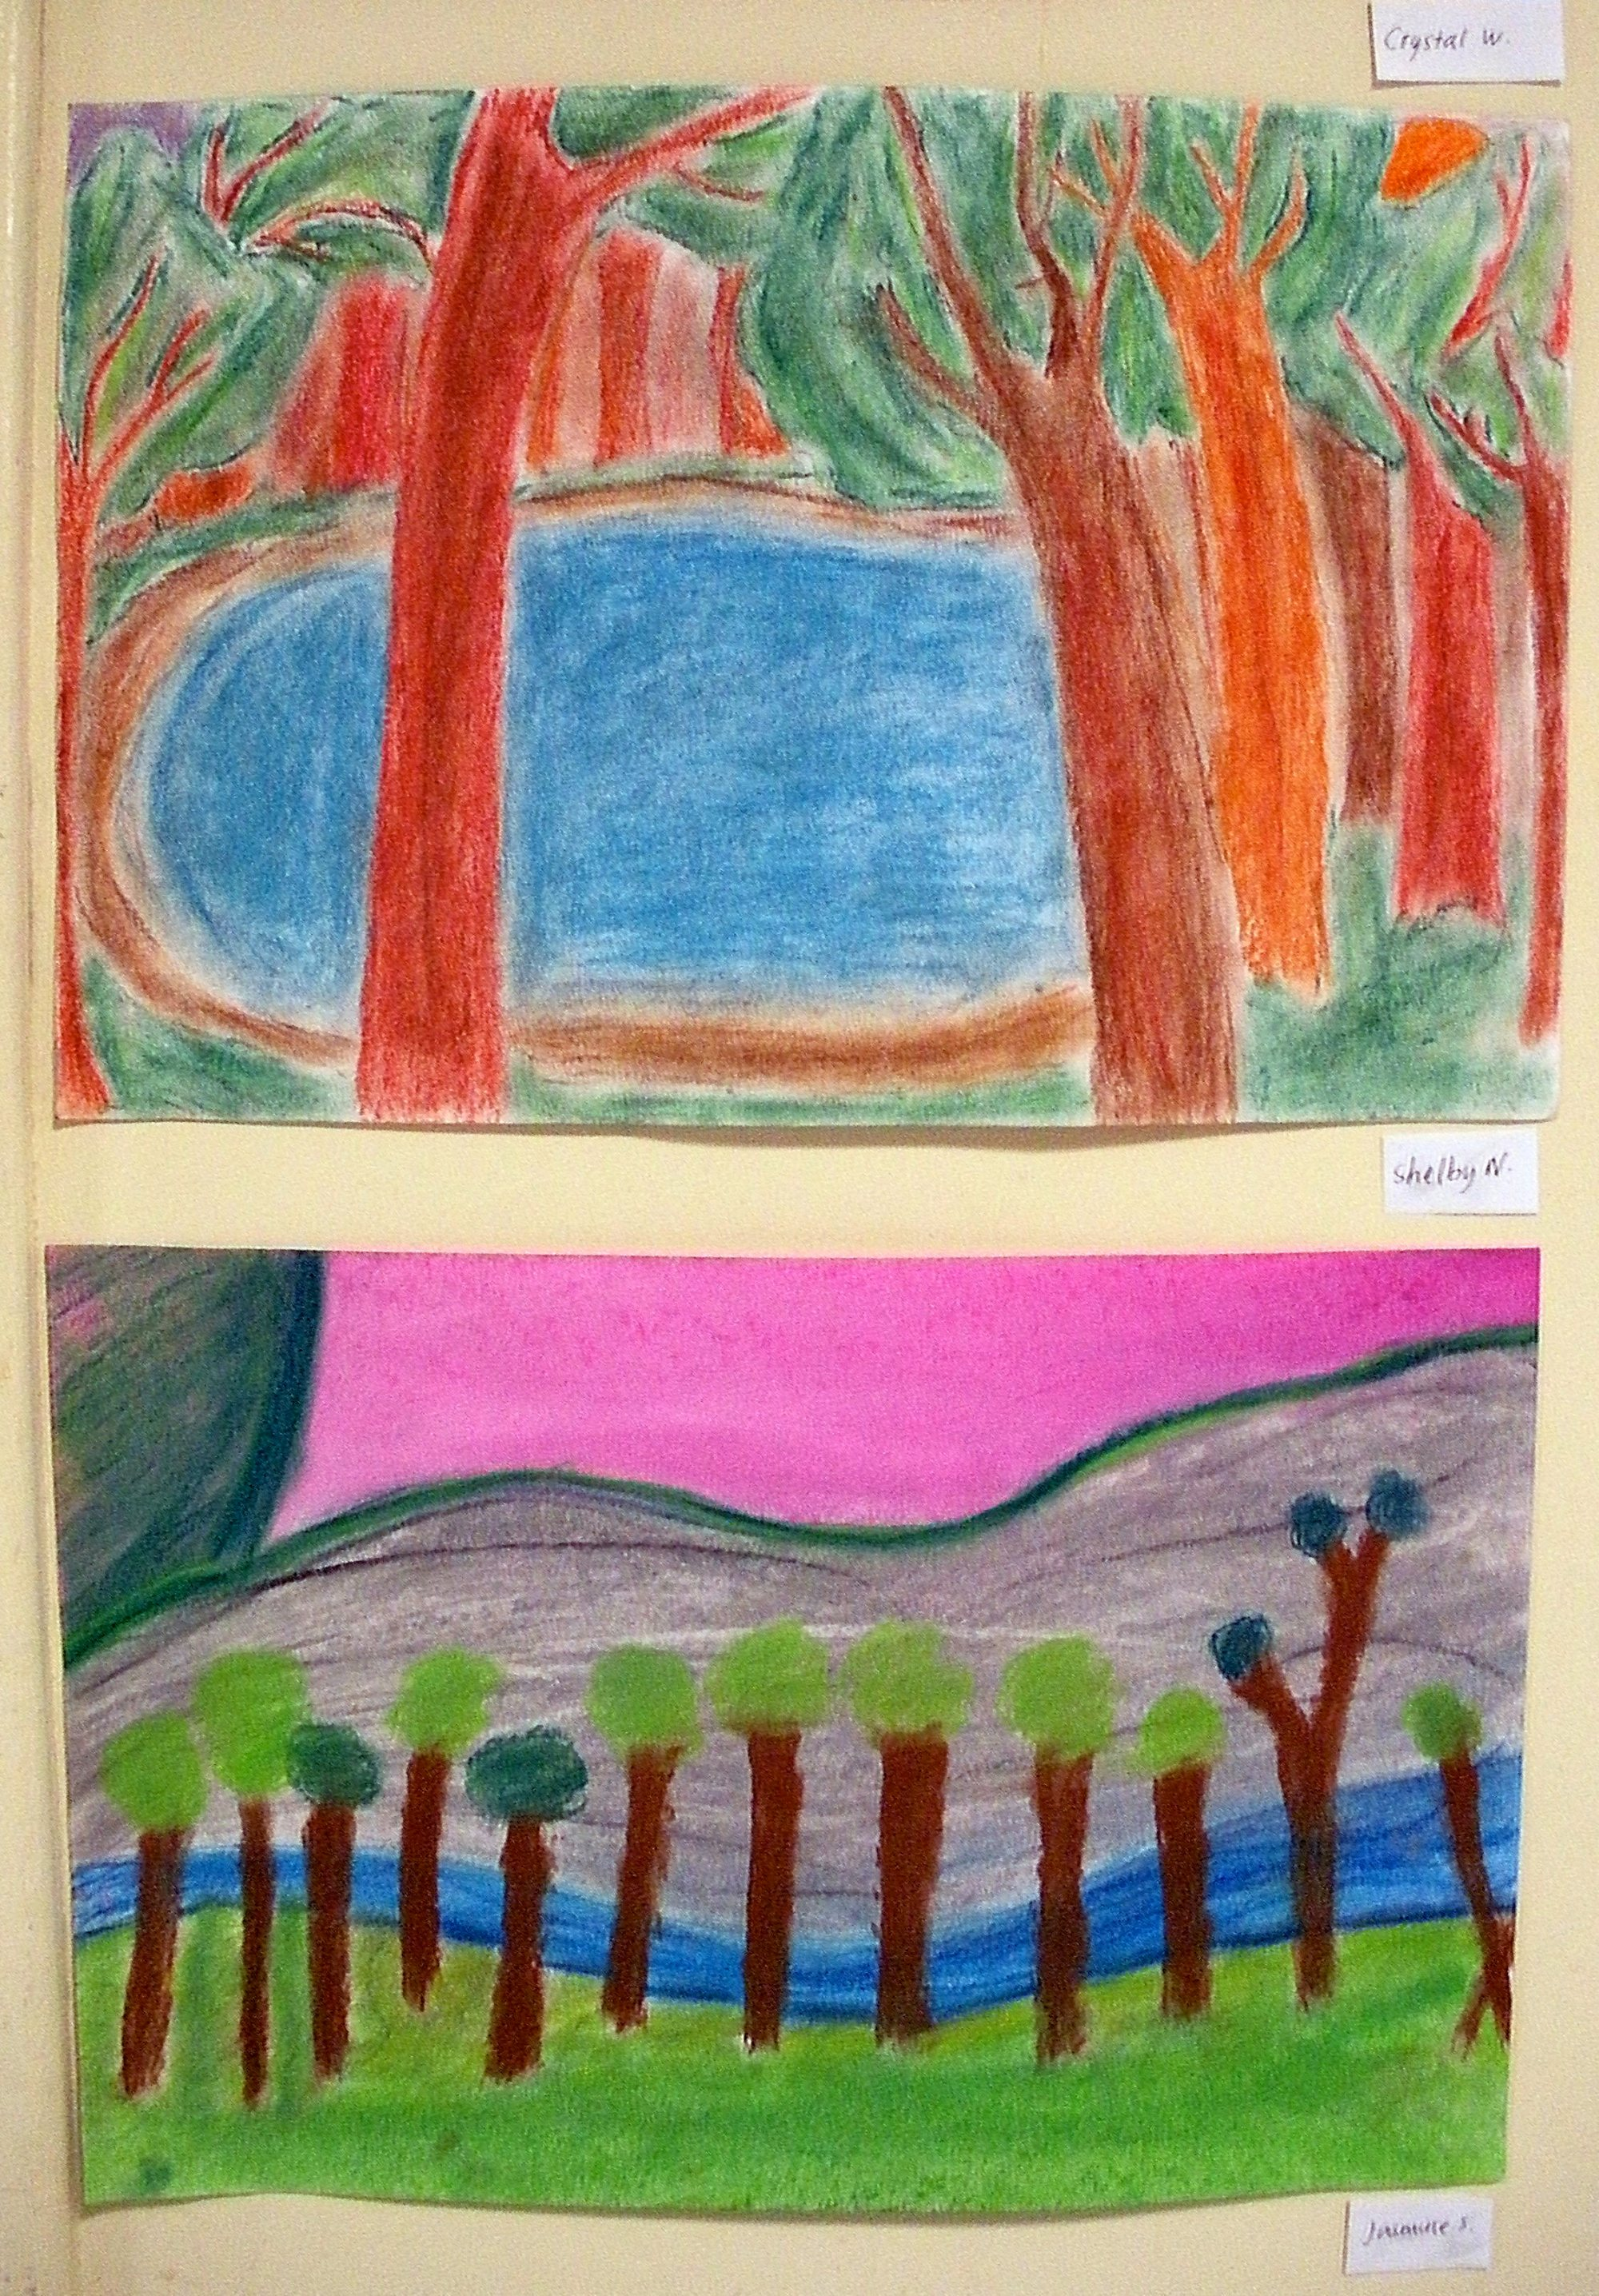 hight resolution of The smARTteacher Resource: Wolf Khan Inspired Landscapes